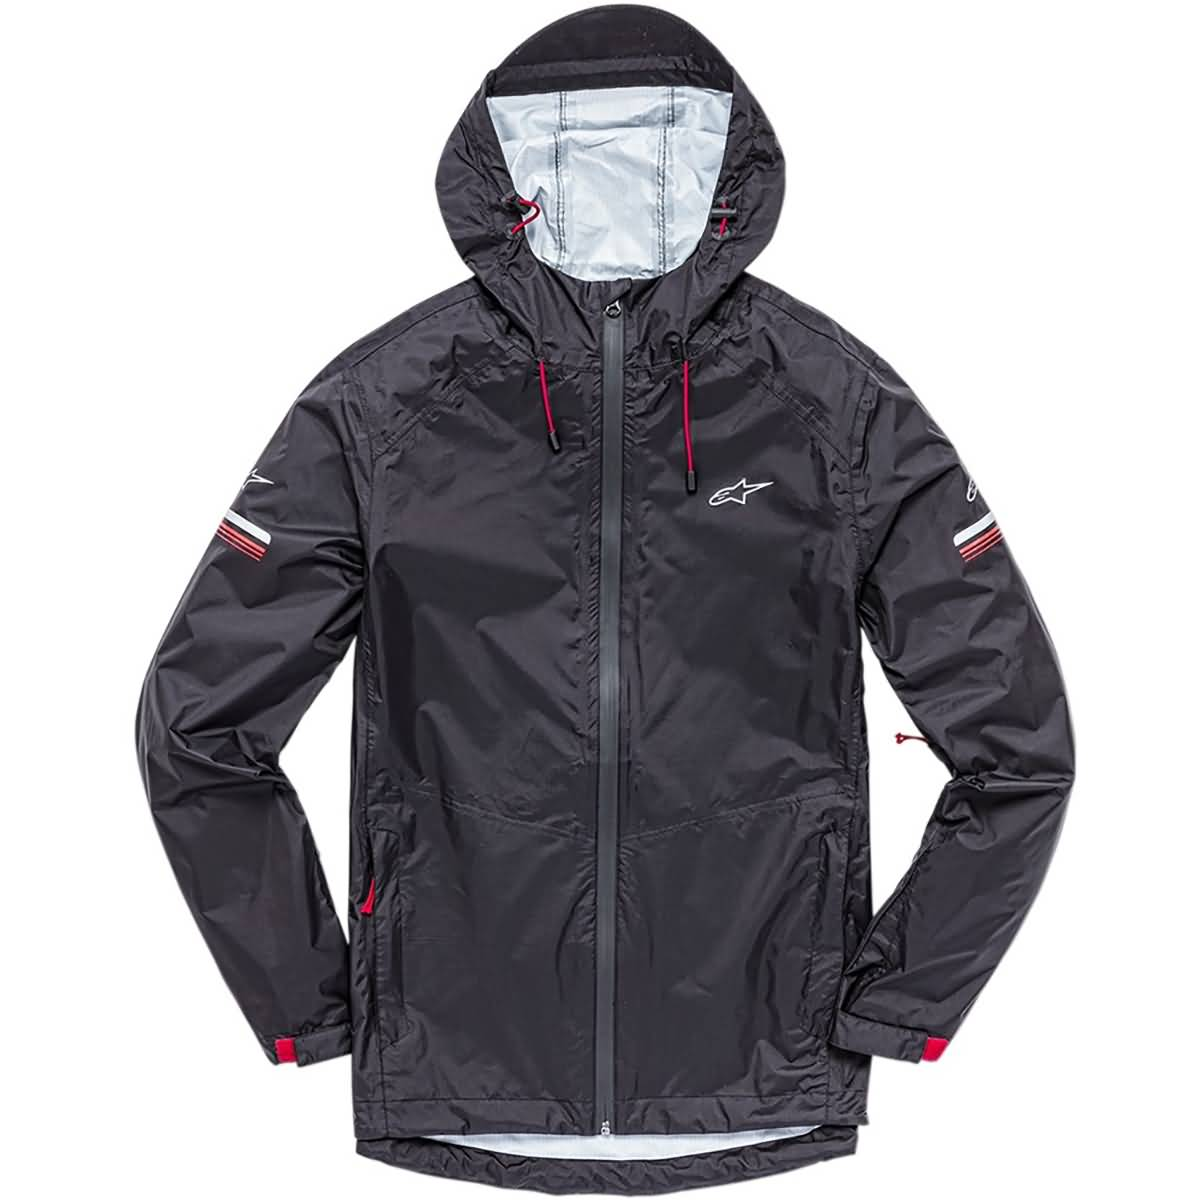 Alpinestars Resist II Rain Men's Jackets-3001